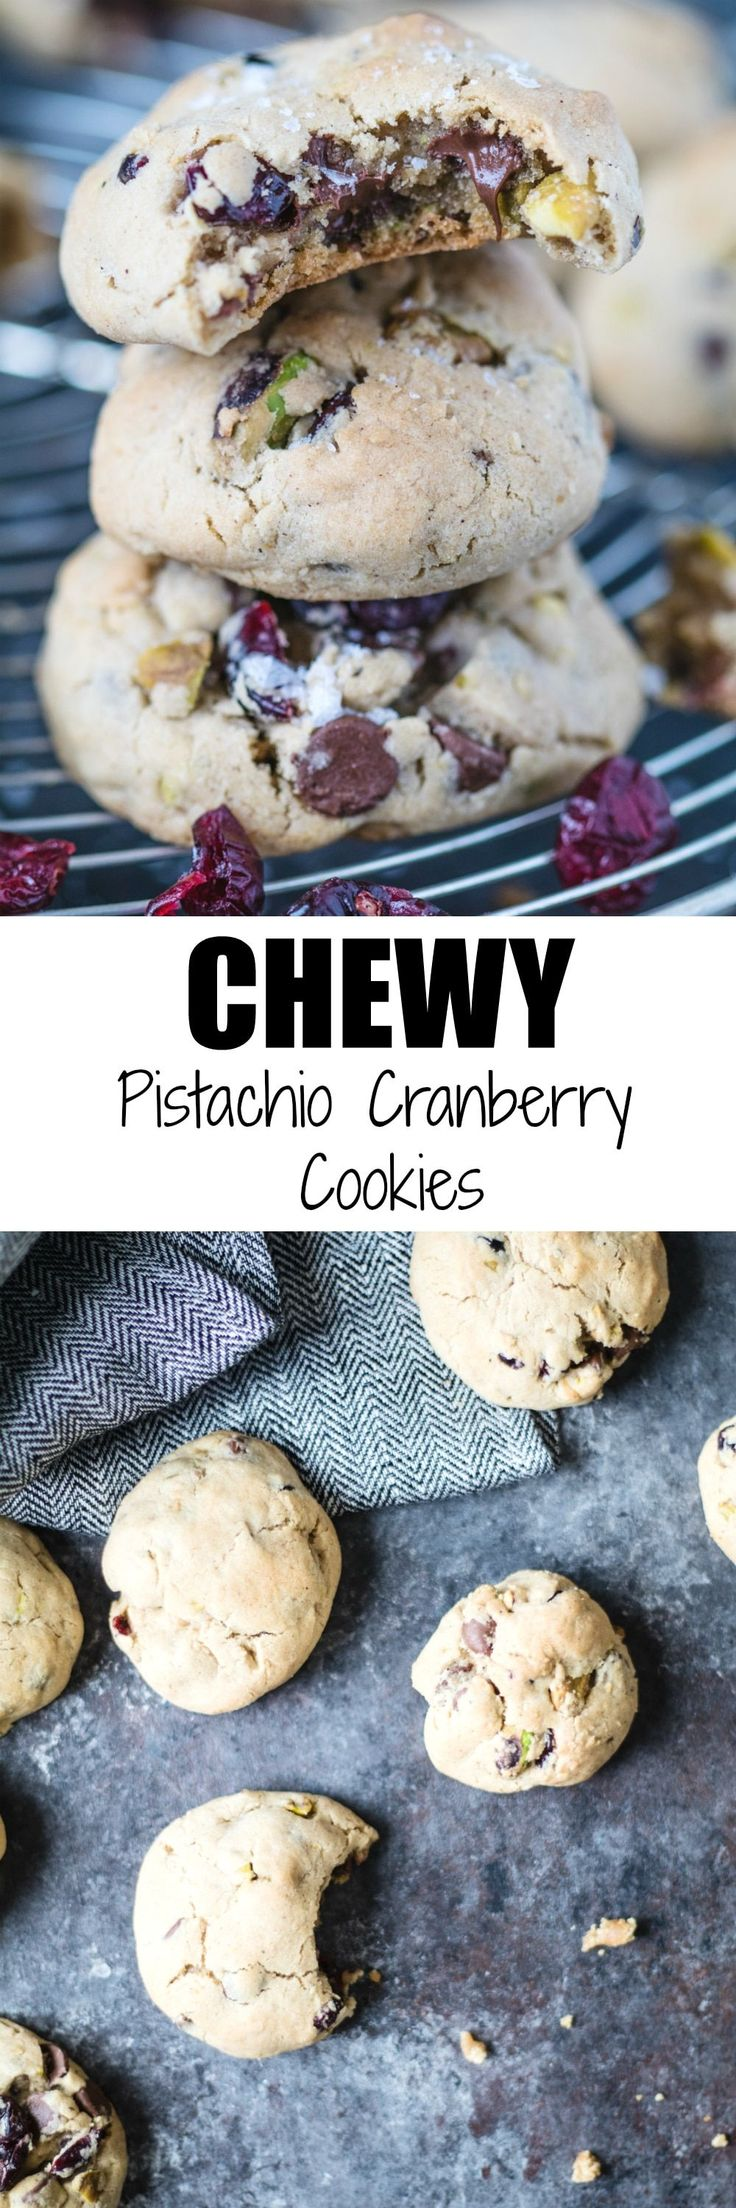 Chewy Pistachio Cranberry Cookies have just the right amount of saltiness and sweetness! |krollskorner.com